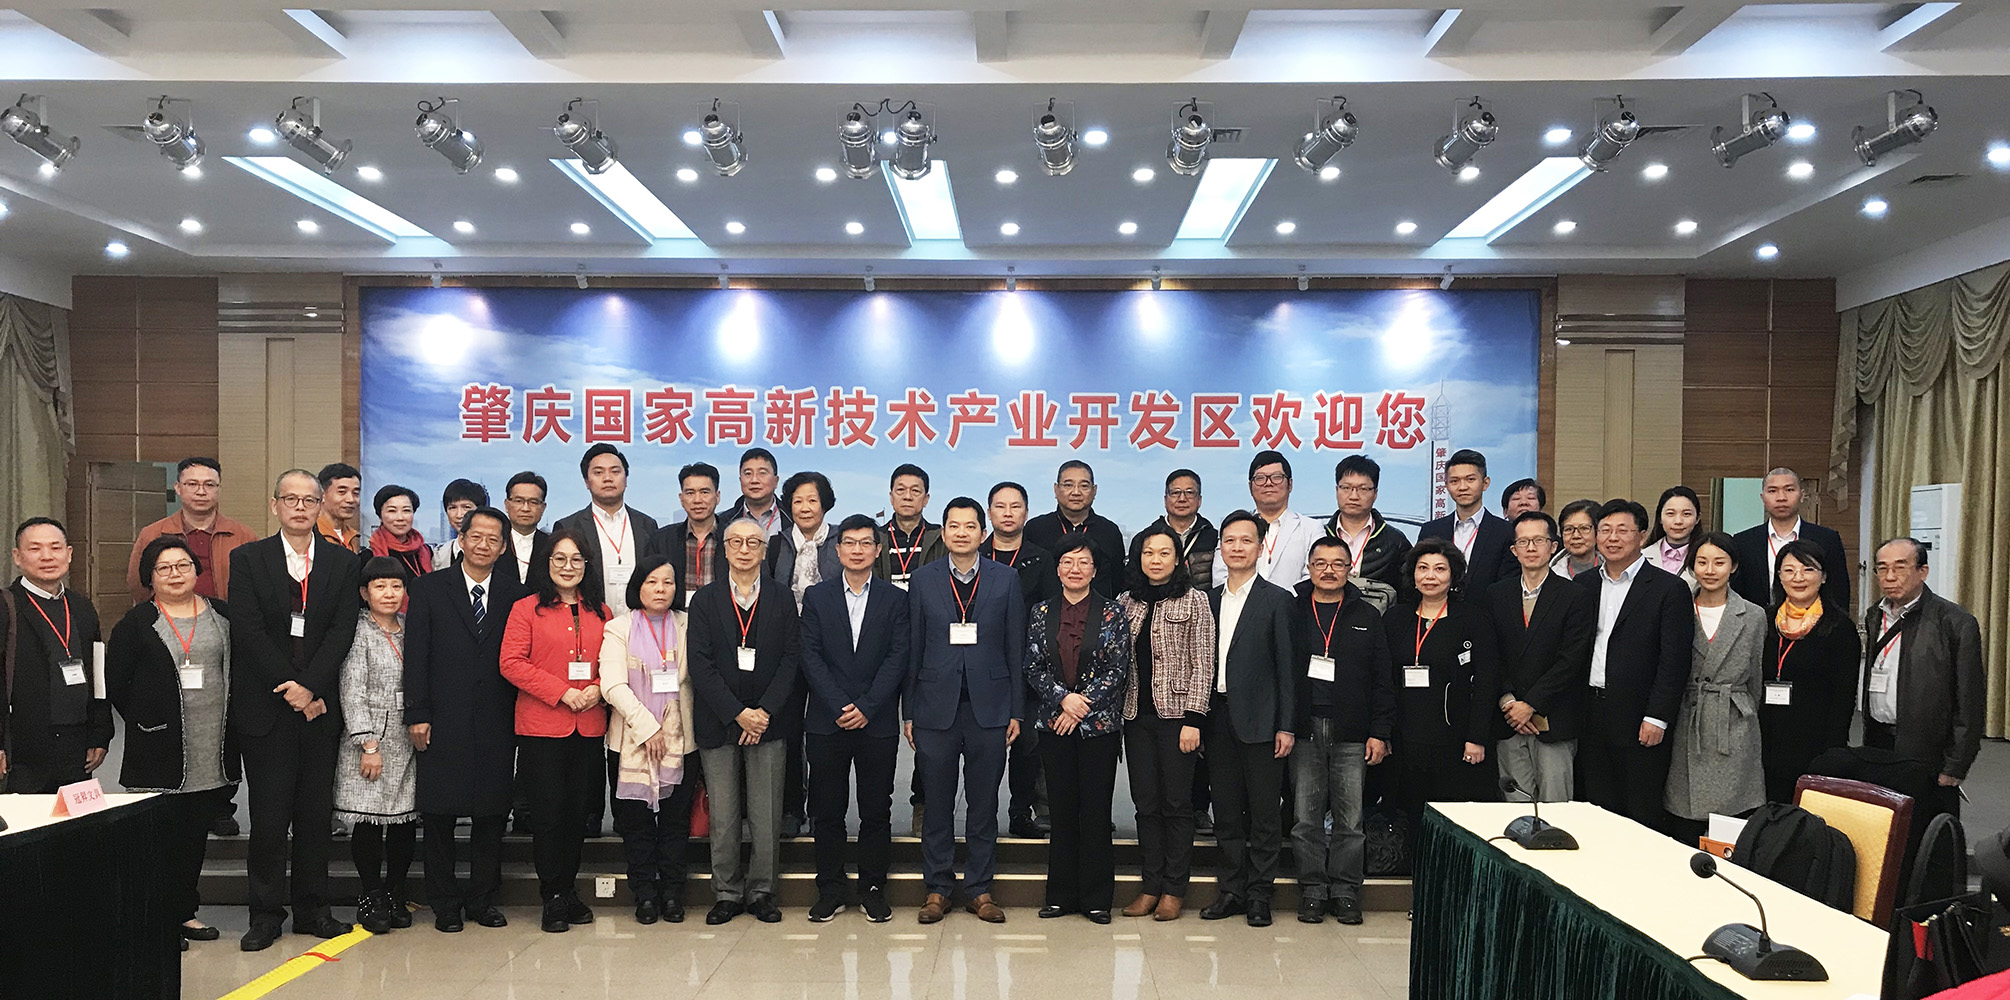 Group photo of the delegation with representatives from Zhaoqing